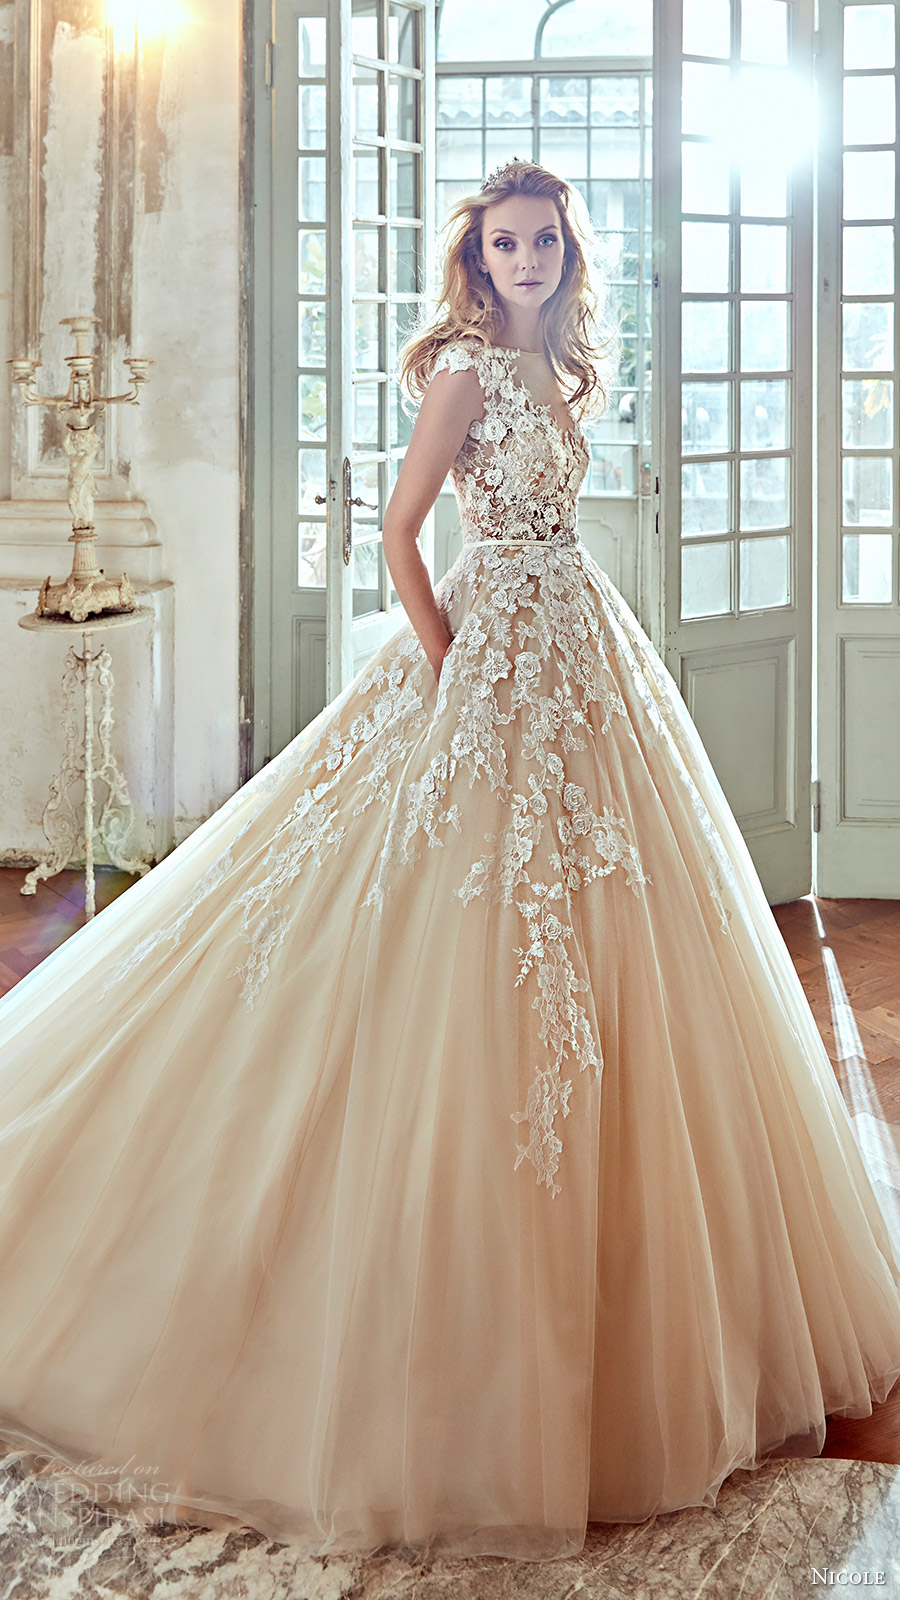 Popular wedding dresses in 2016 part 1 ball gowns a Wedding dress a line ball gown